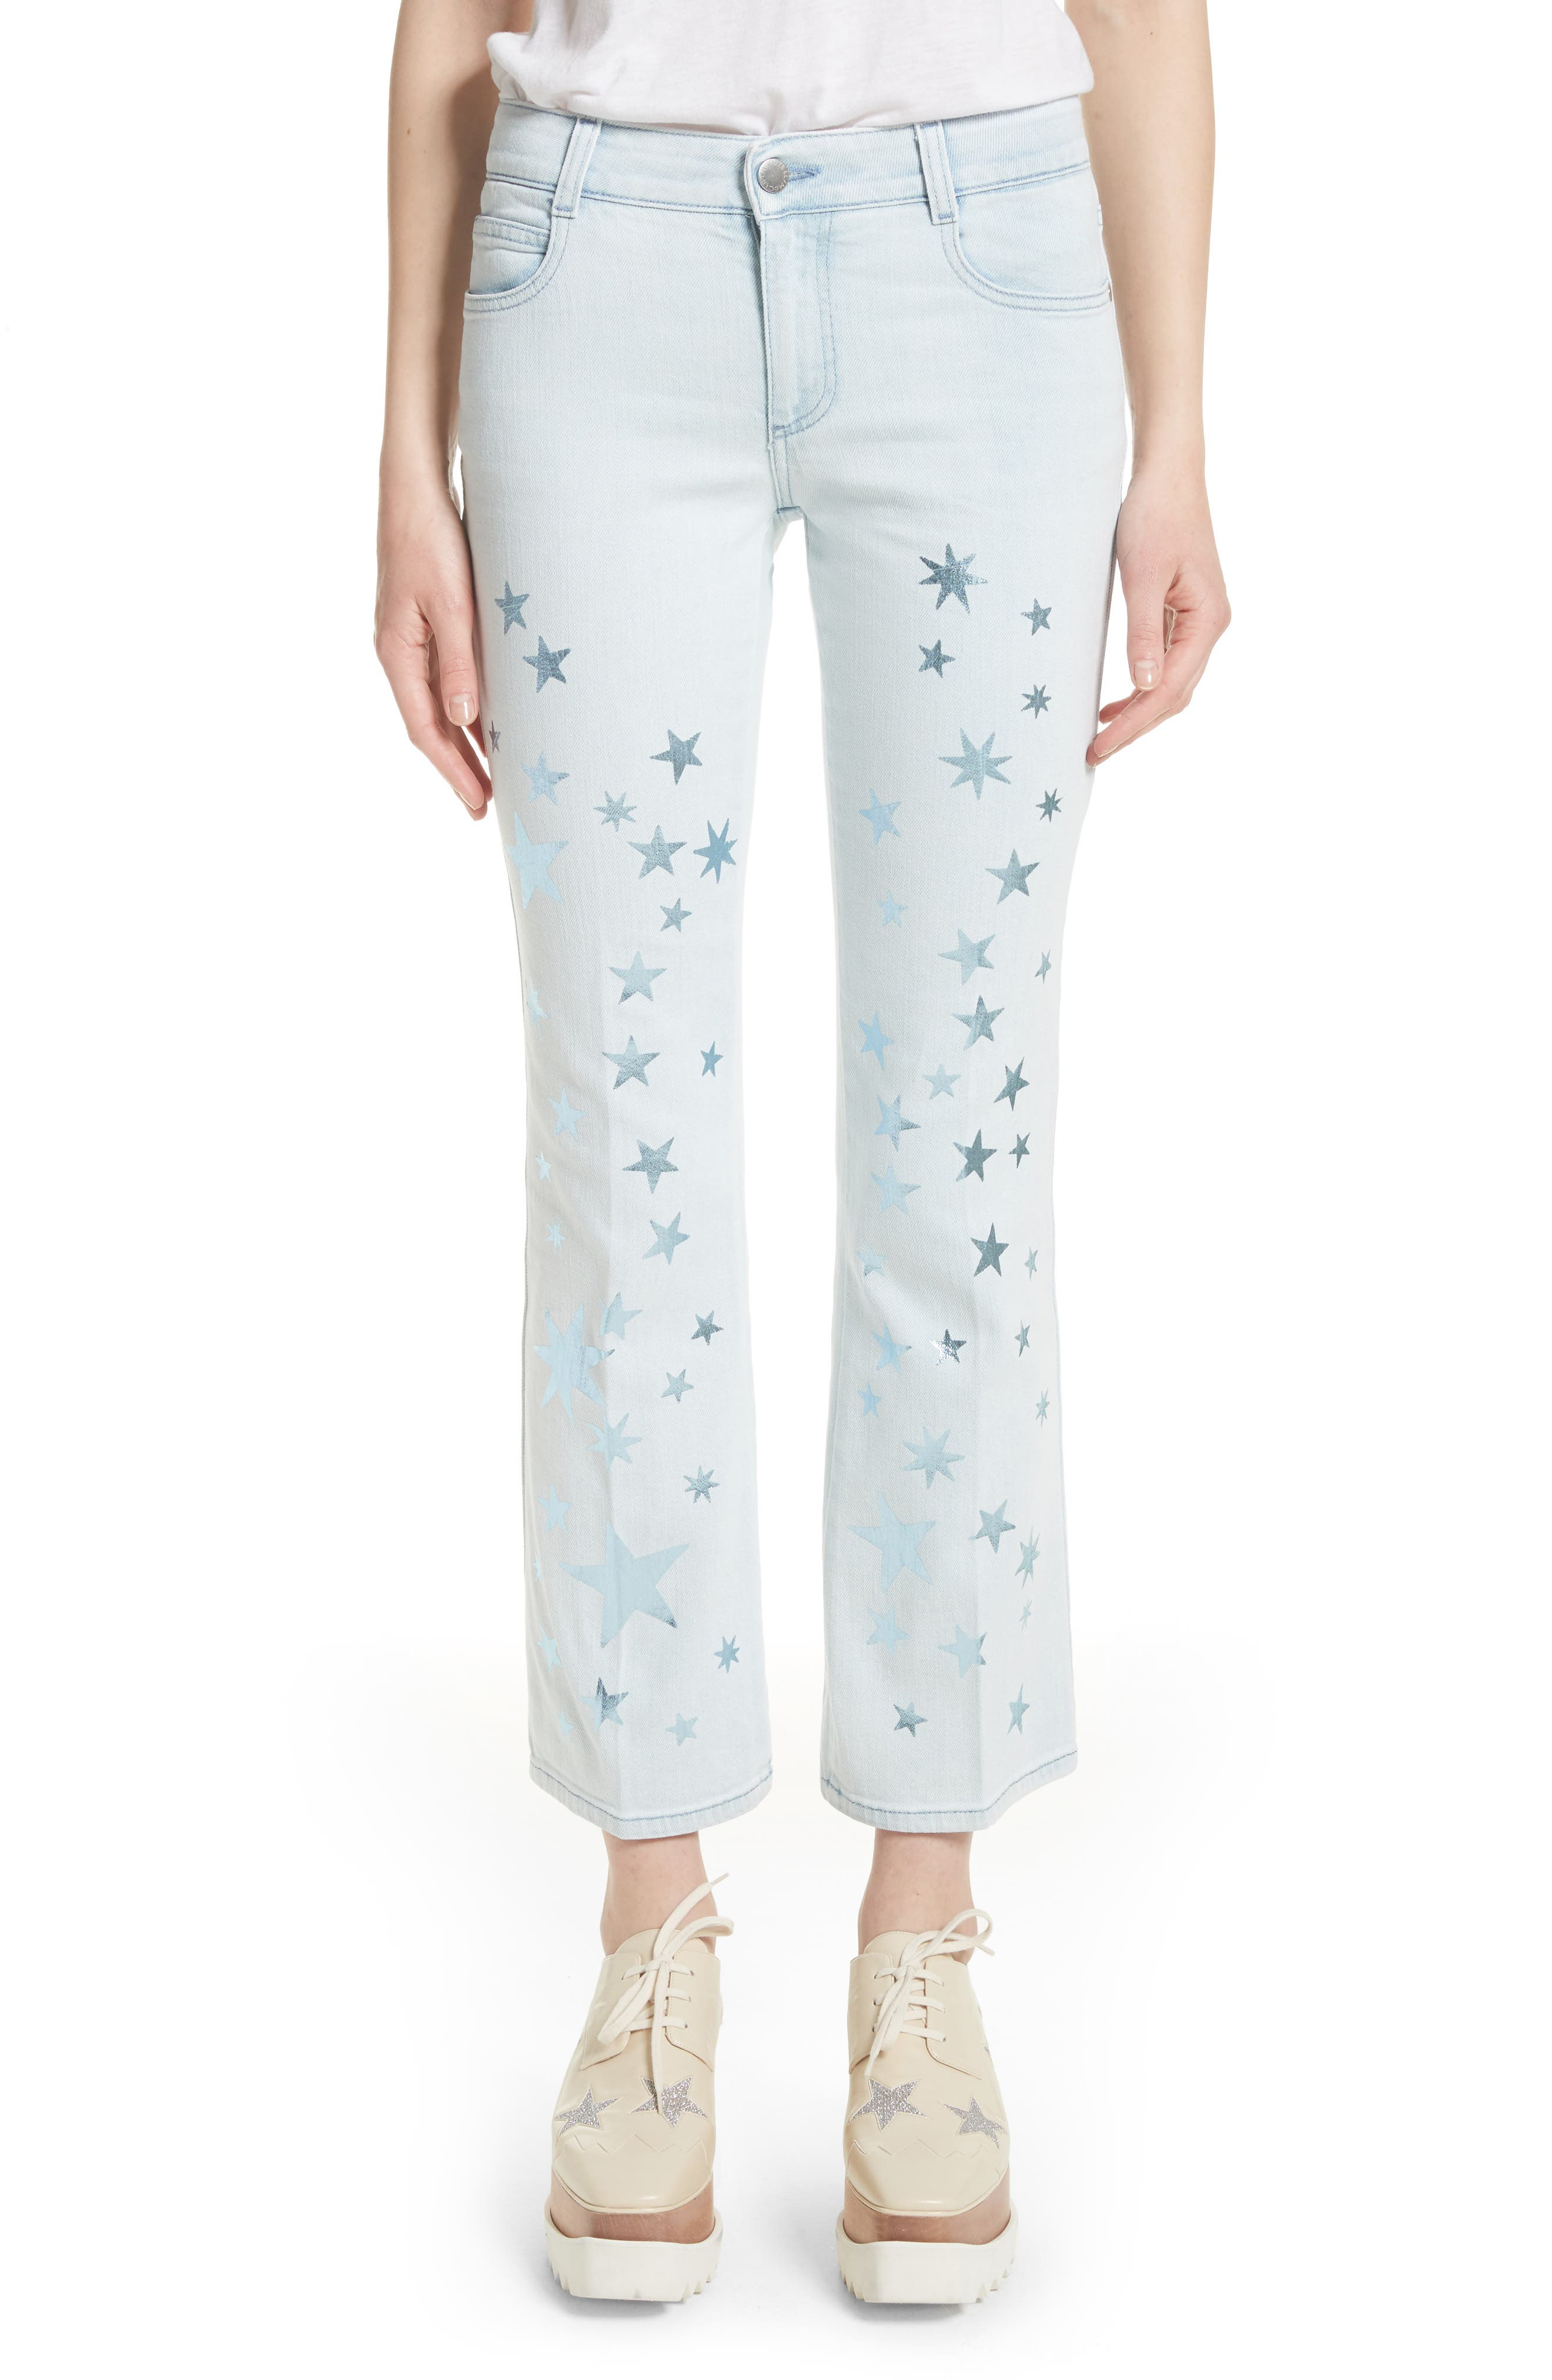 Alternate Image 1 Selected - Stella McCartney Metallic Star Kick Flare Jeans (Sun Faded Blue)